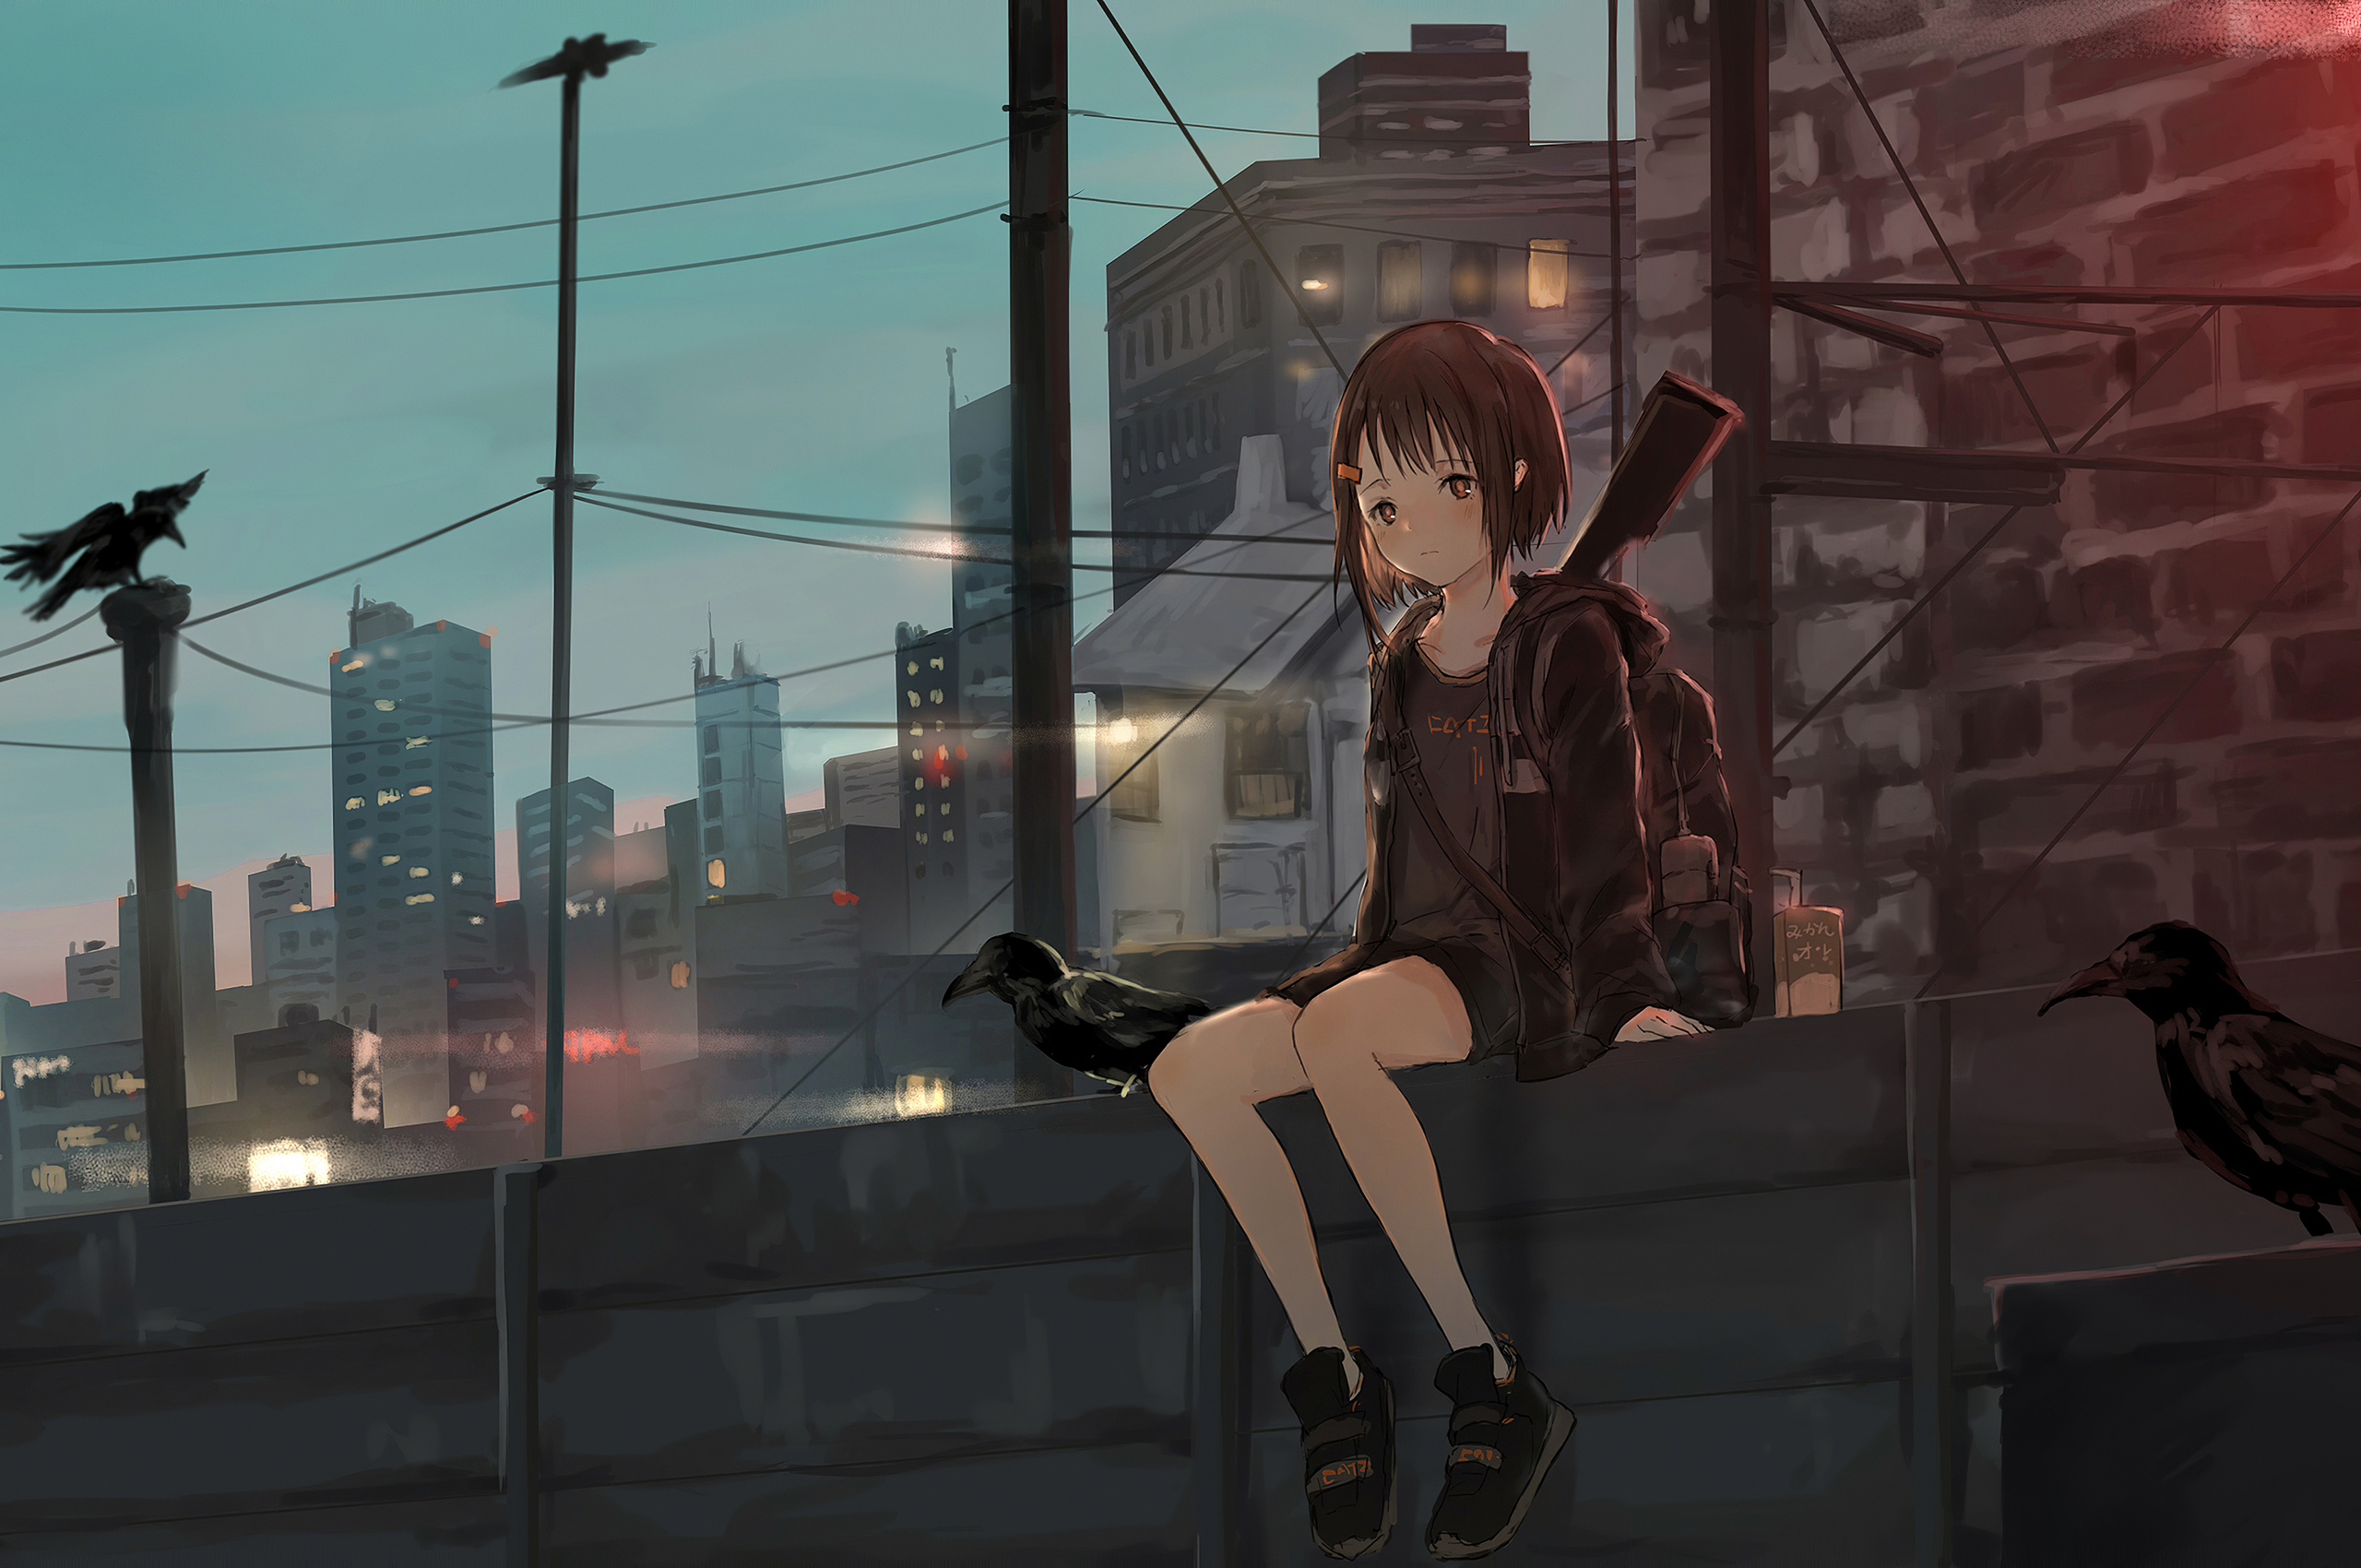 2560x1700 Anime Girl Sitting Alone Roof Sad 4k Chromebook Pixel Hd 4k Wallpapers Images Backgrounds Photos And Pictures